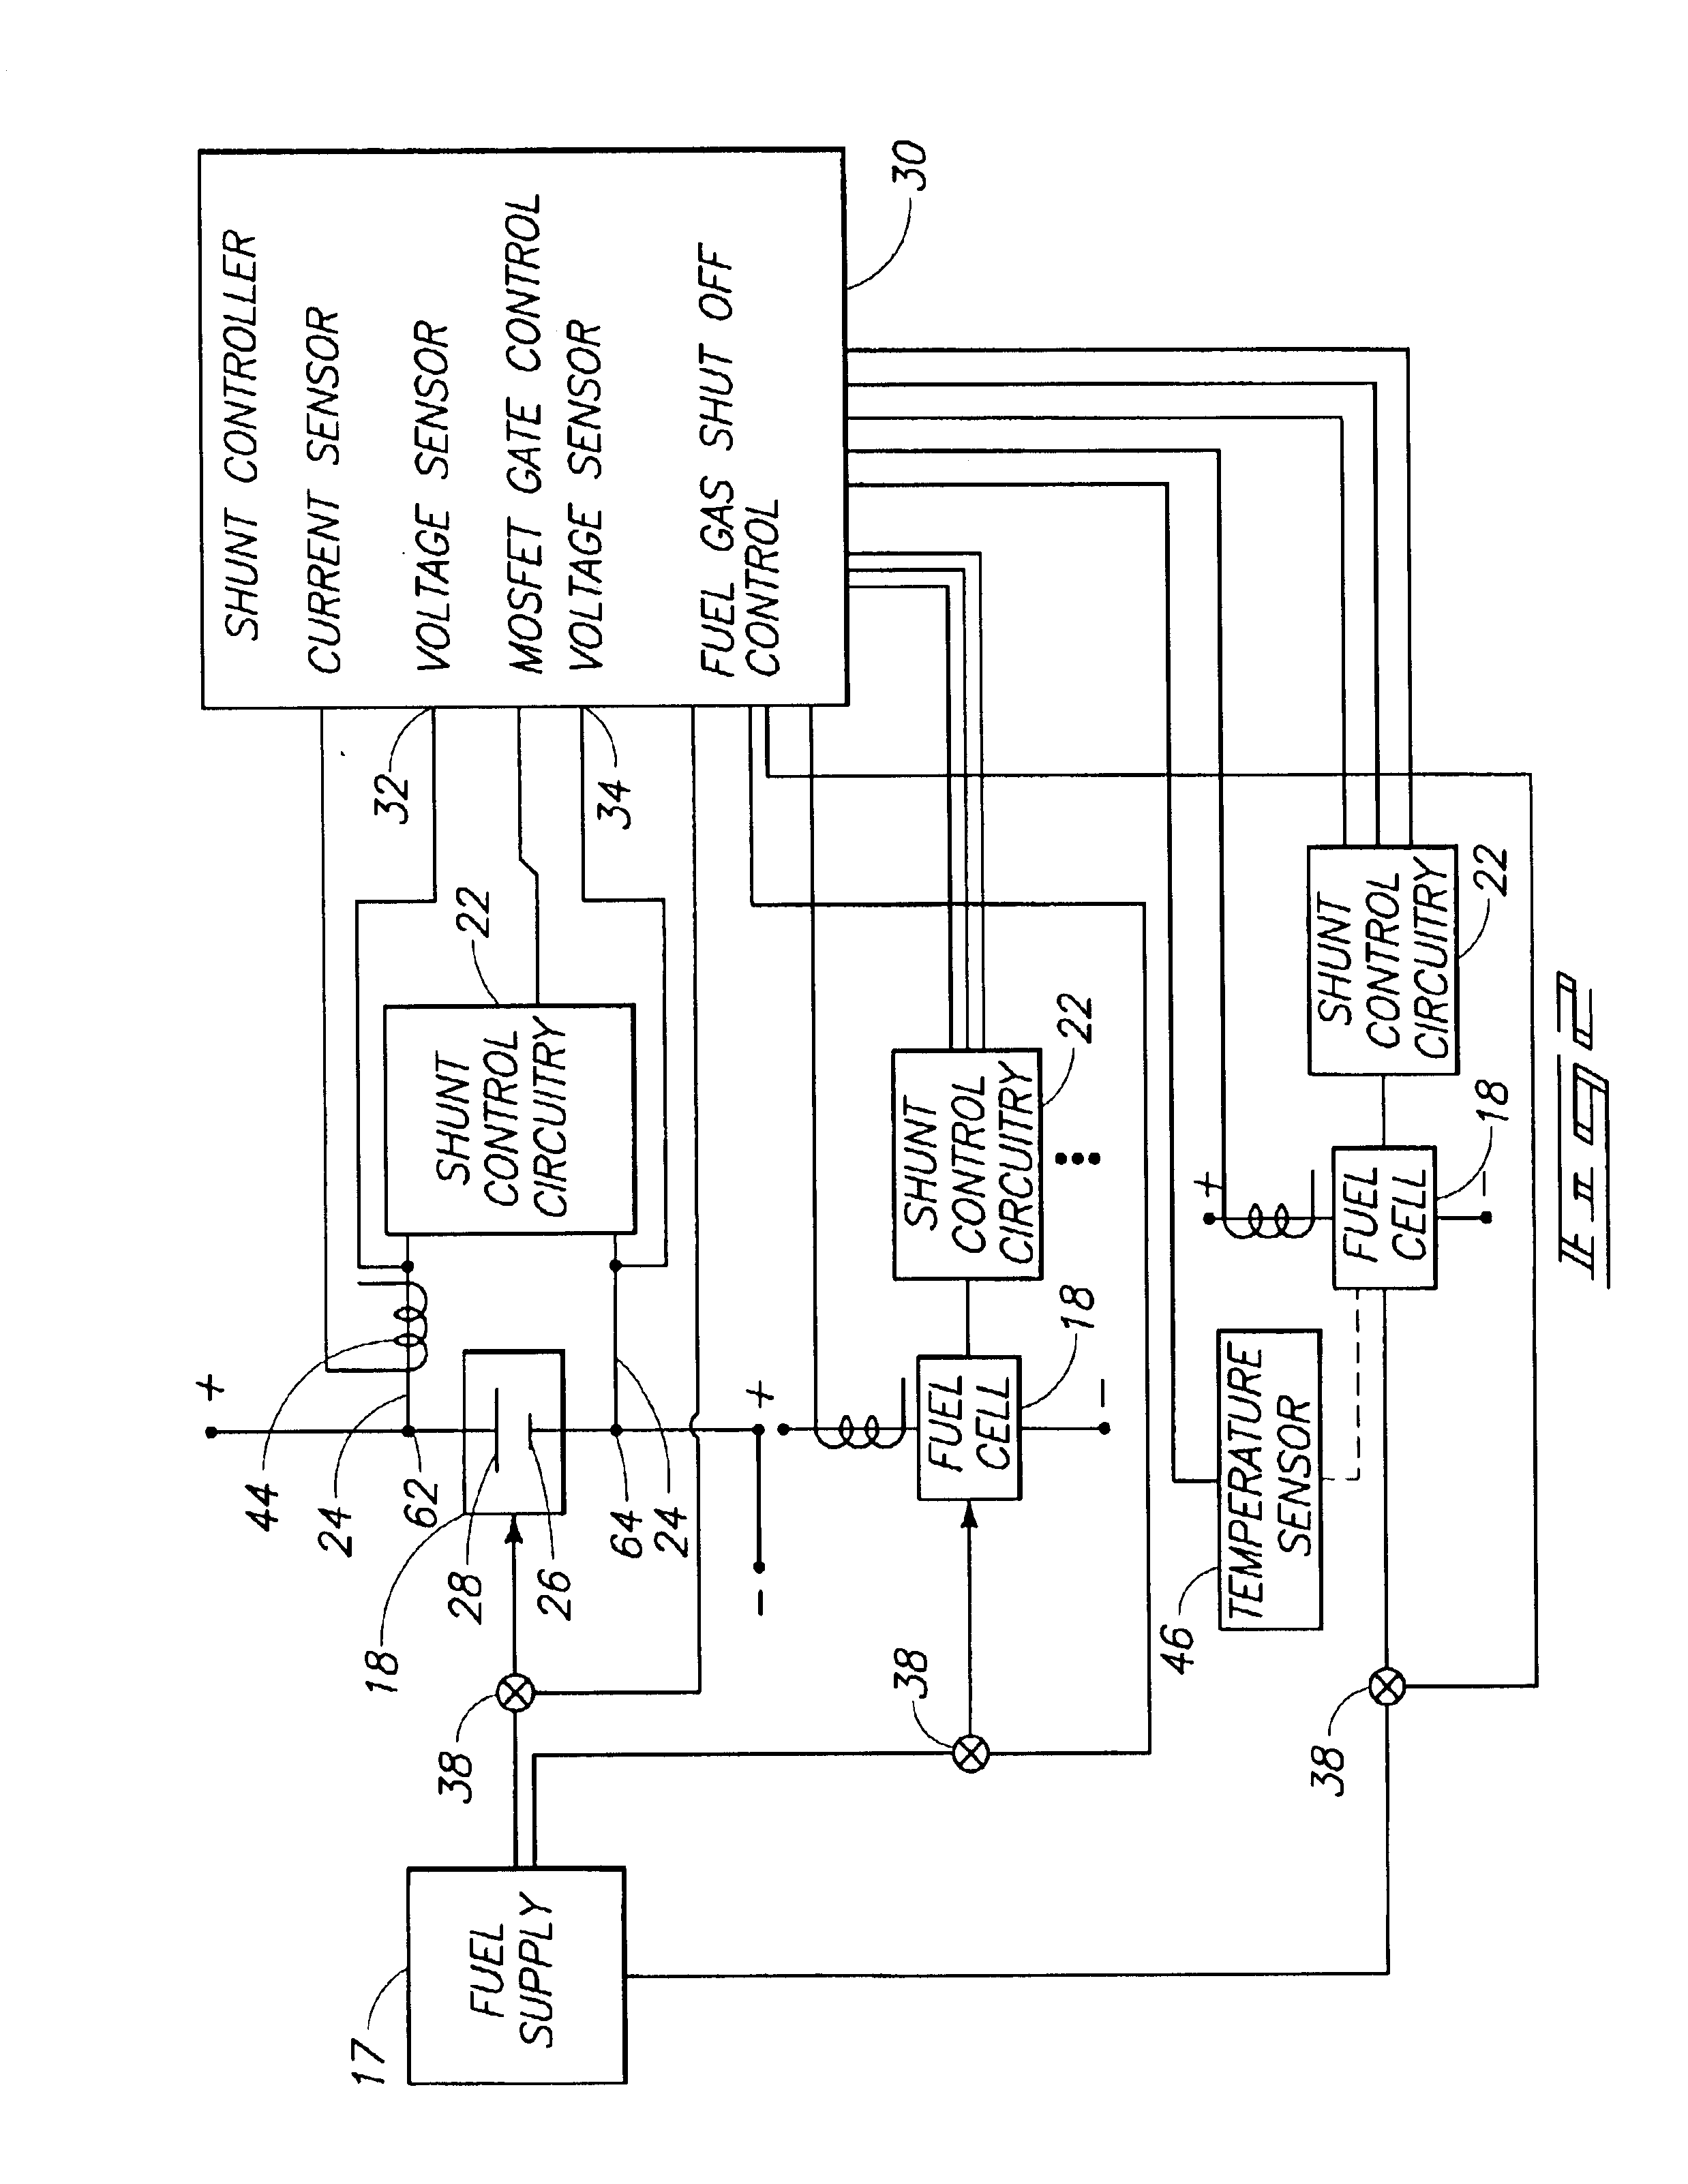 Patent Us6805987 Method And Apparatus For Monitoring Equivalent Fig4 Schematic Diagram Of The Main Components A Fuel Cell System Drawing